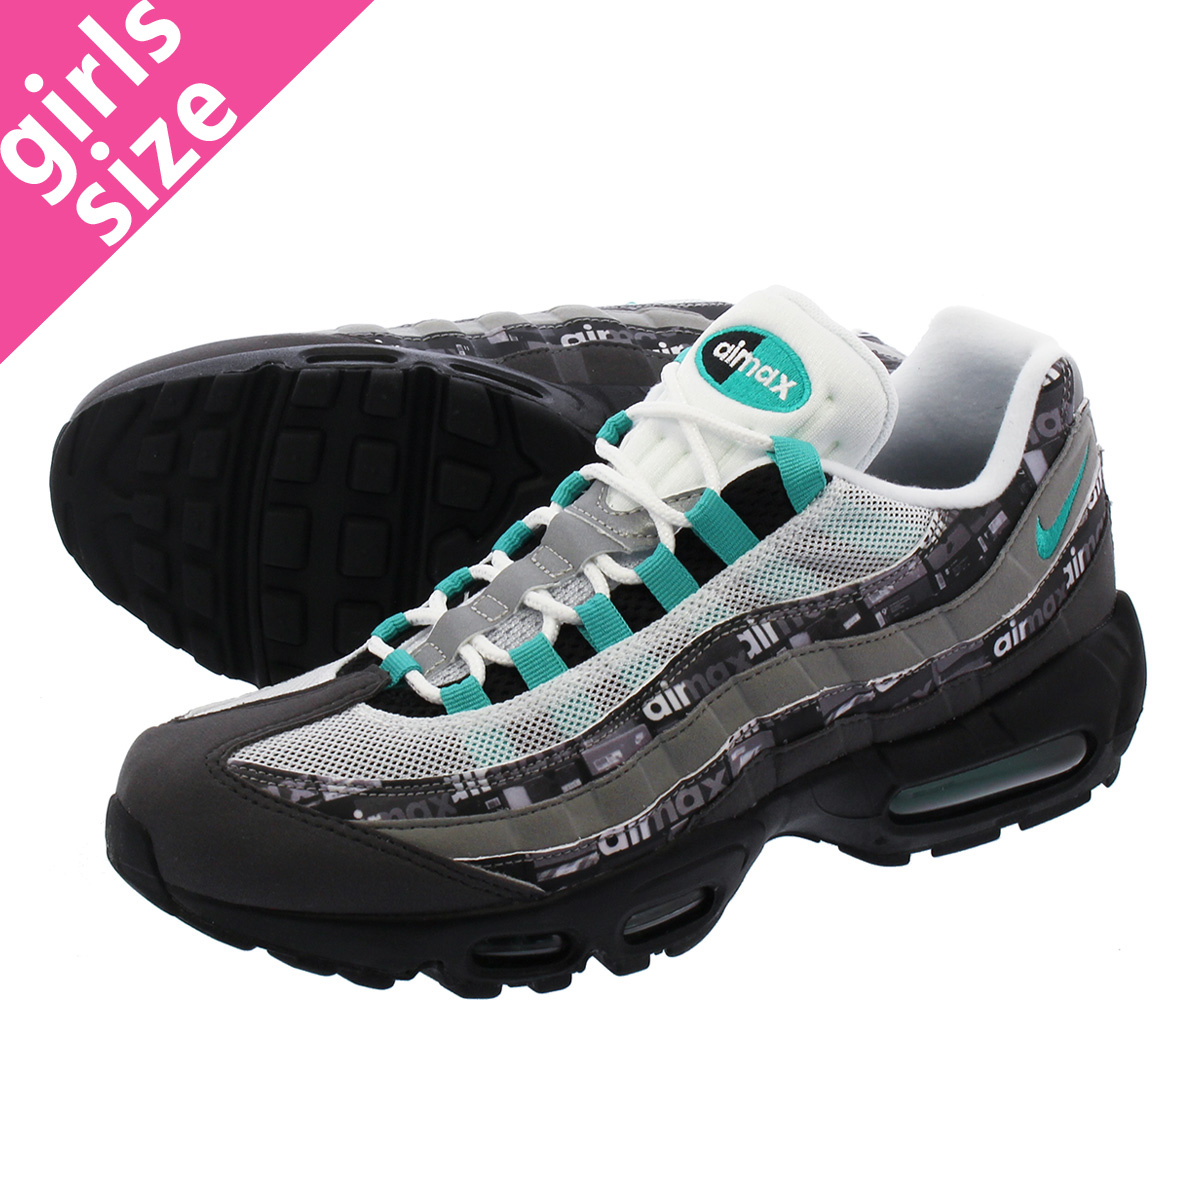 db63c9358e LOWTEX PLUS: NIKE AIR MAX 95 PRINT Kie Ney AMAX 95 print BLACK/CLEAR JADE/MEDIUM  ASH/DK PEWTER aq0925-001 | Rakuten Global Market